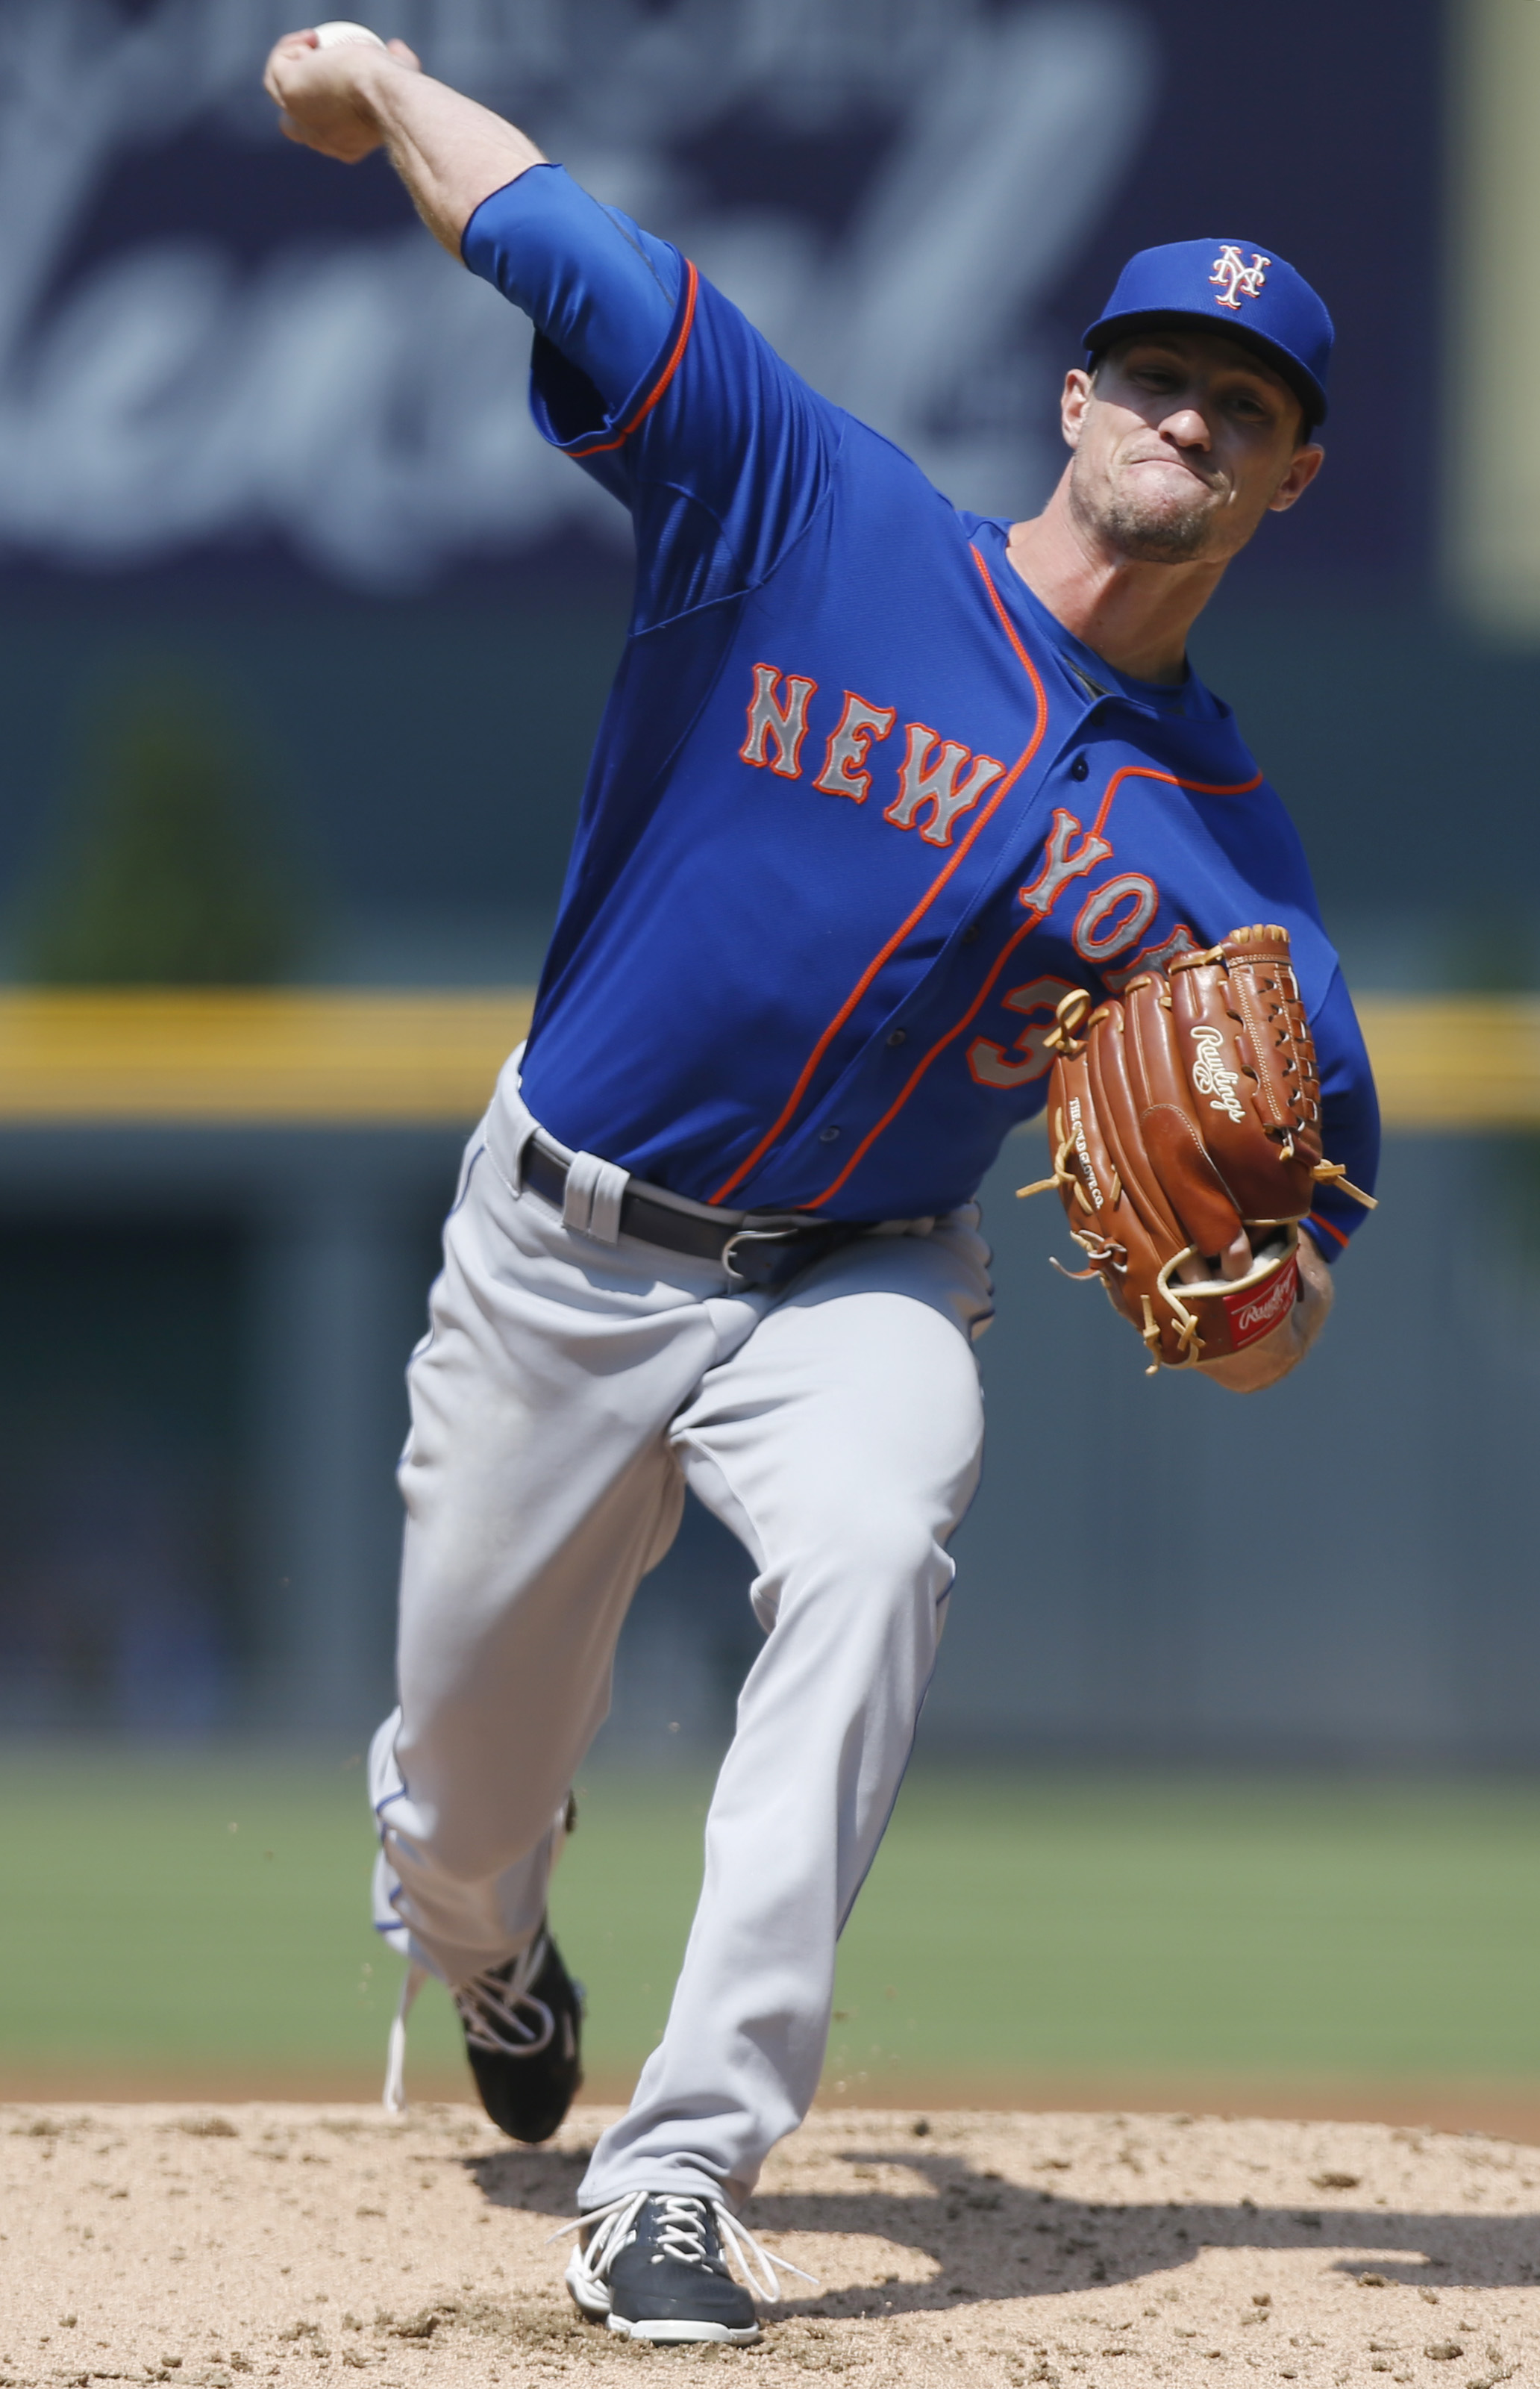 New York Mets starting pitcher Logan Verrett works against the Colorado Rockies during the first inning of a baseball game Sunday, Aug. 23, 2015, in Denver. (AP Photo/David Zalubowski)